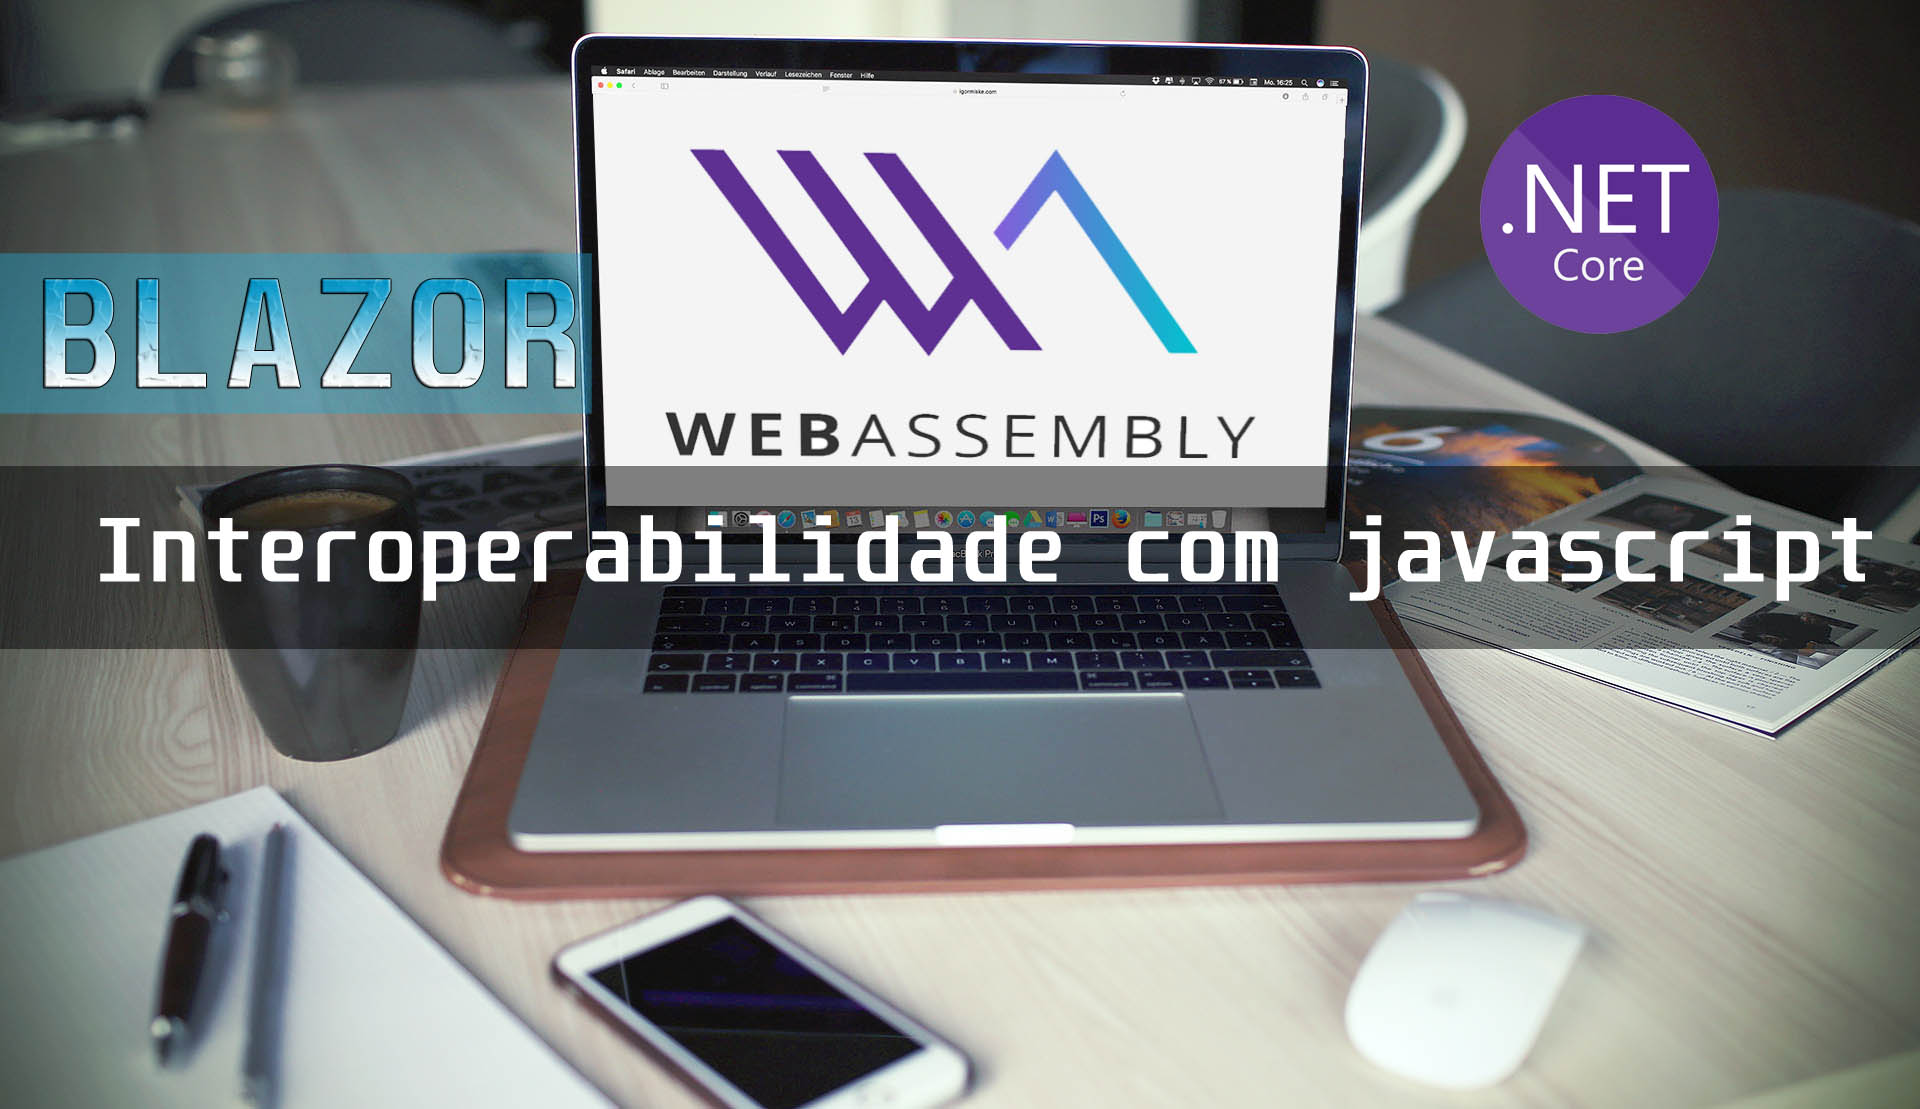 Blazor - Interoperabilidade com Javascript